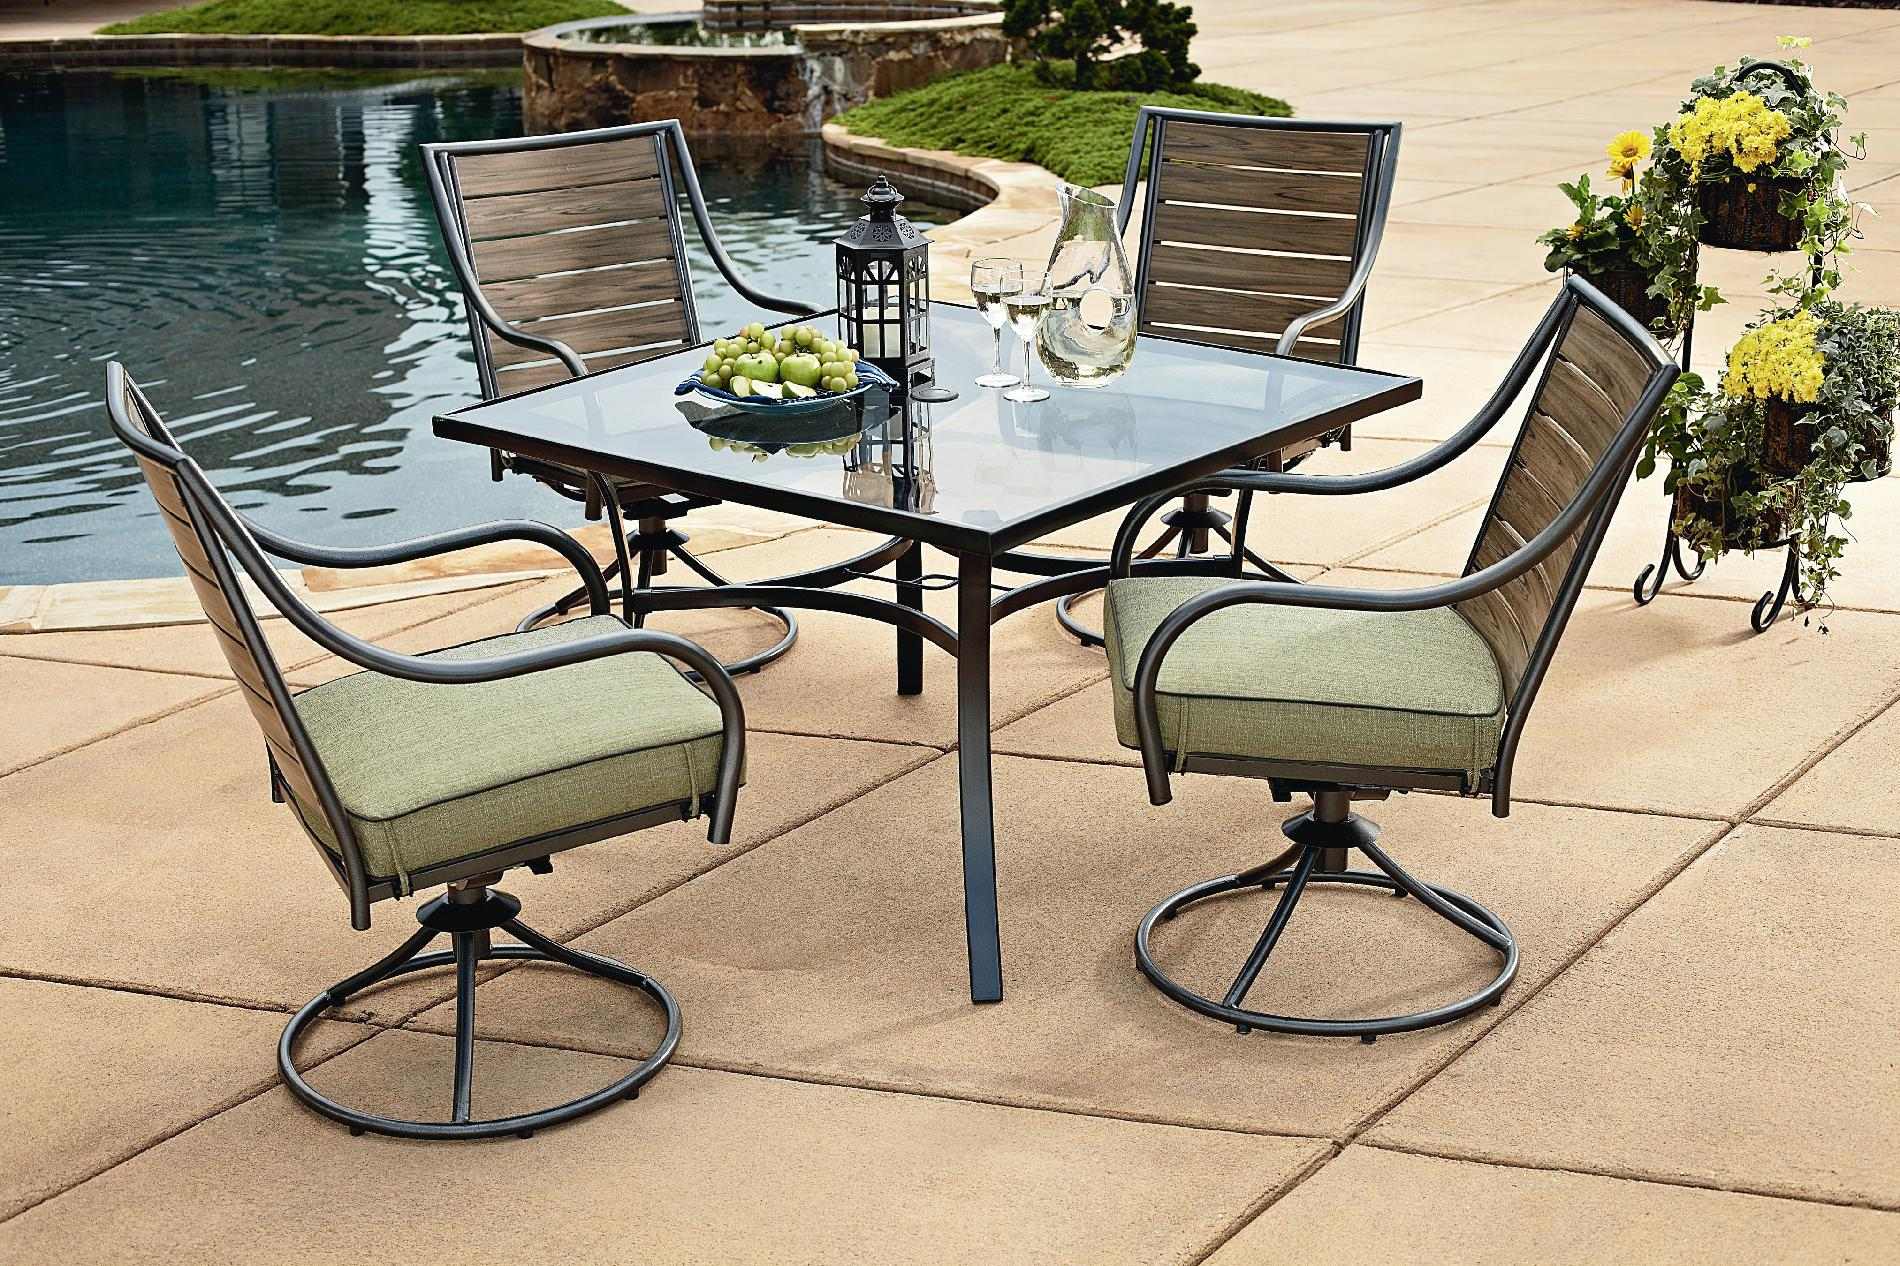 sears patio furniture sets Garden Oasis - S13S4162R - Brooks 5pc Patio Dining Set